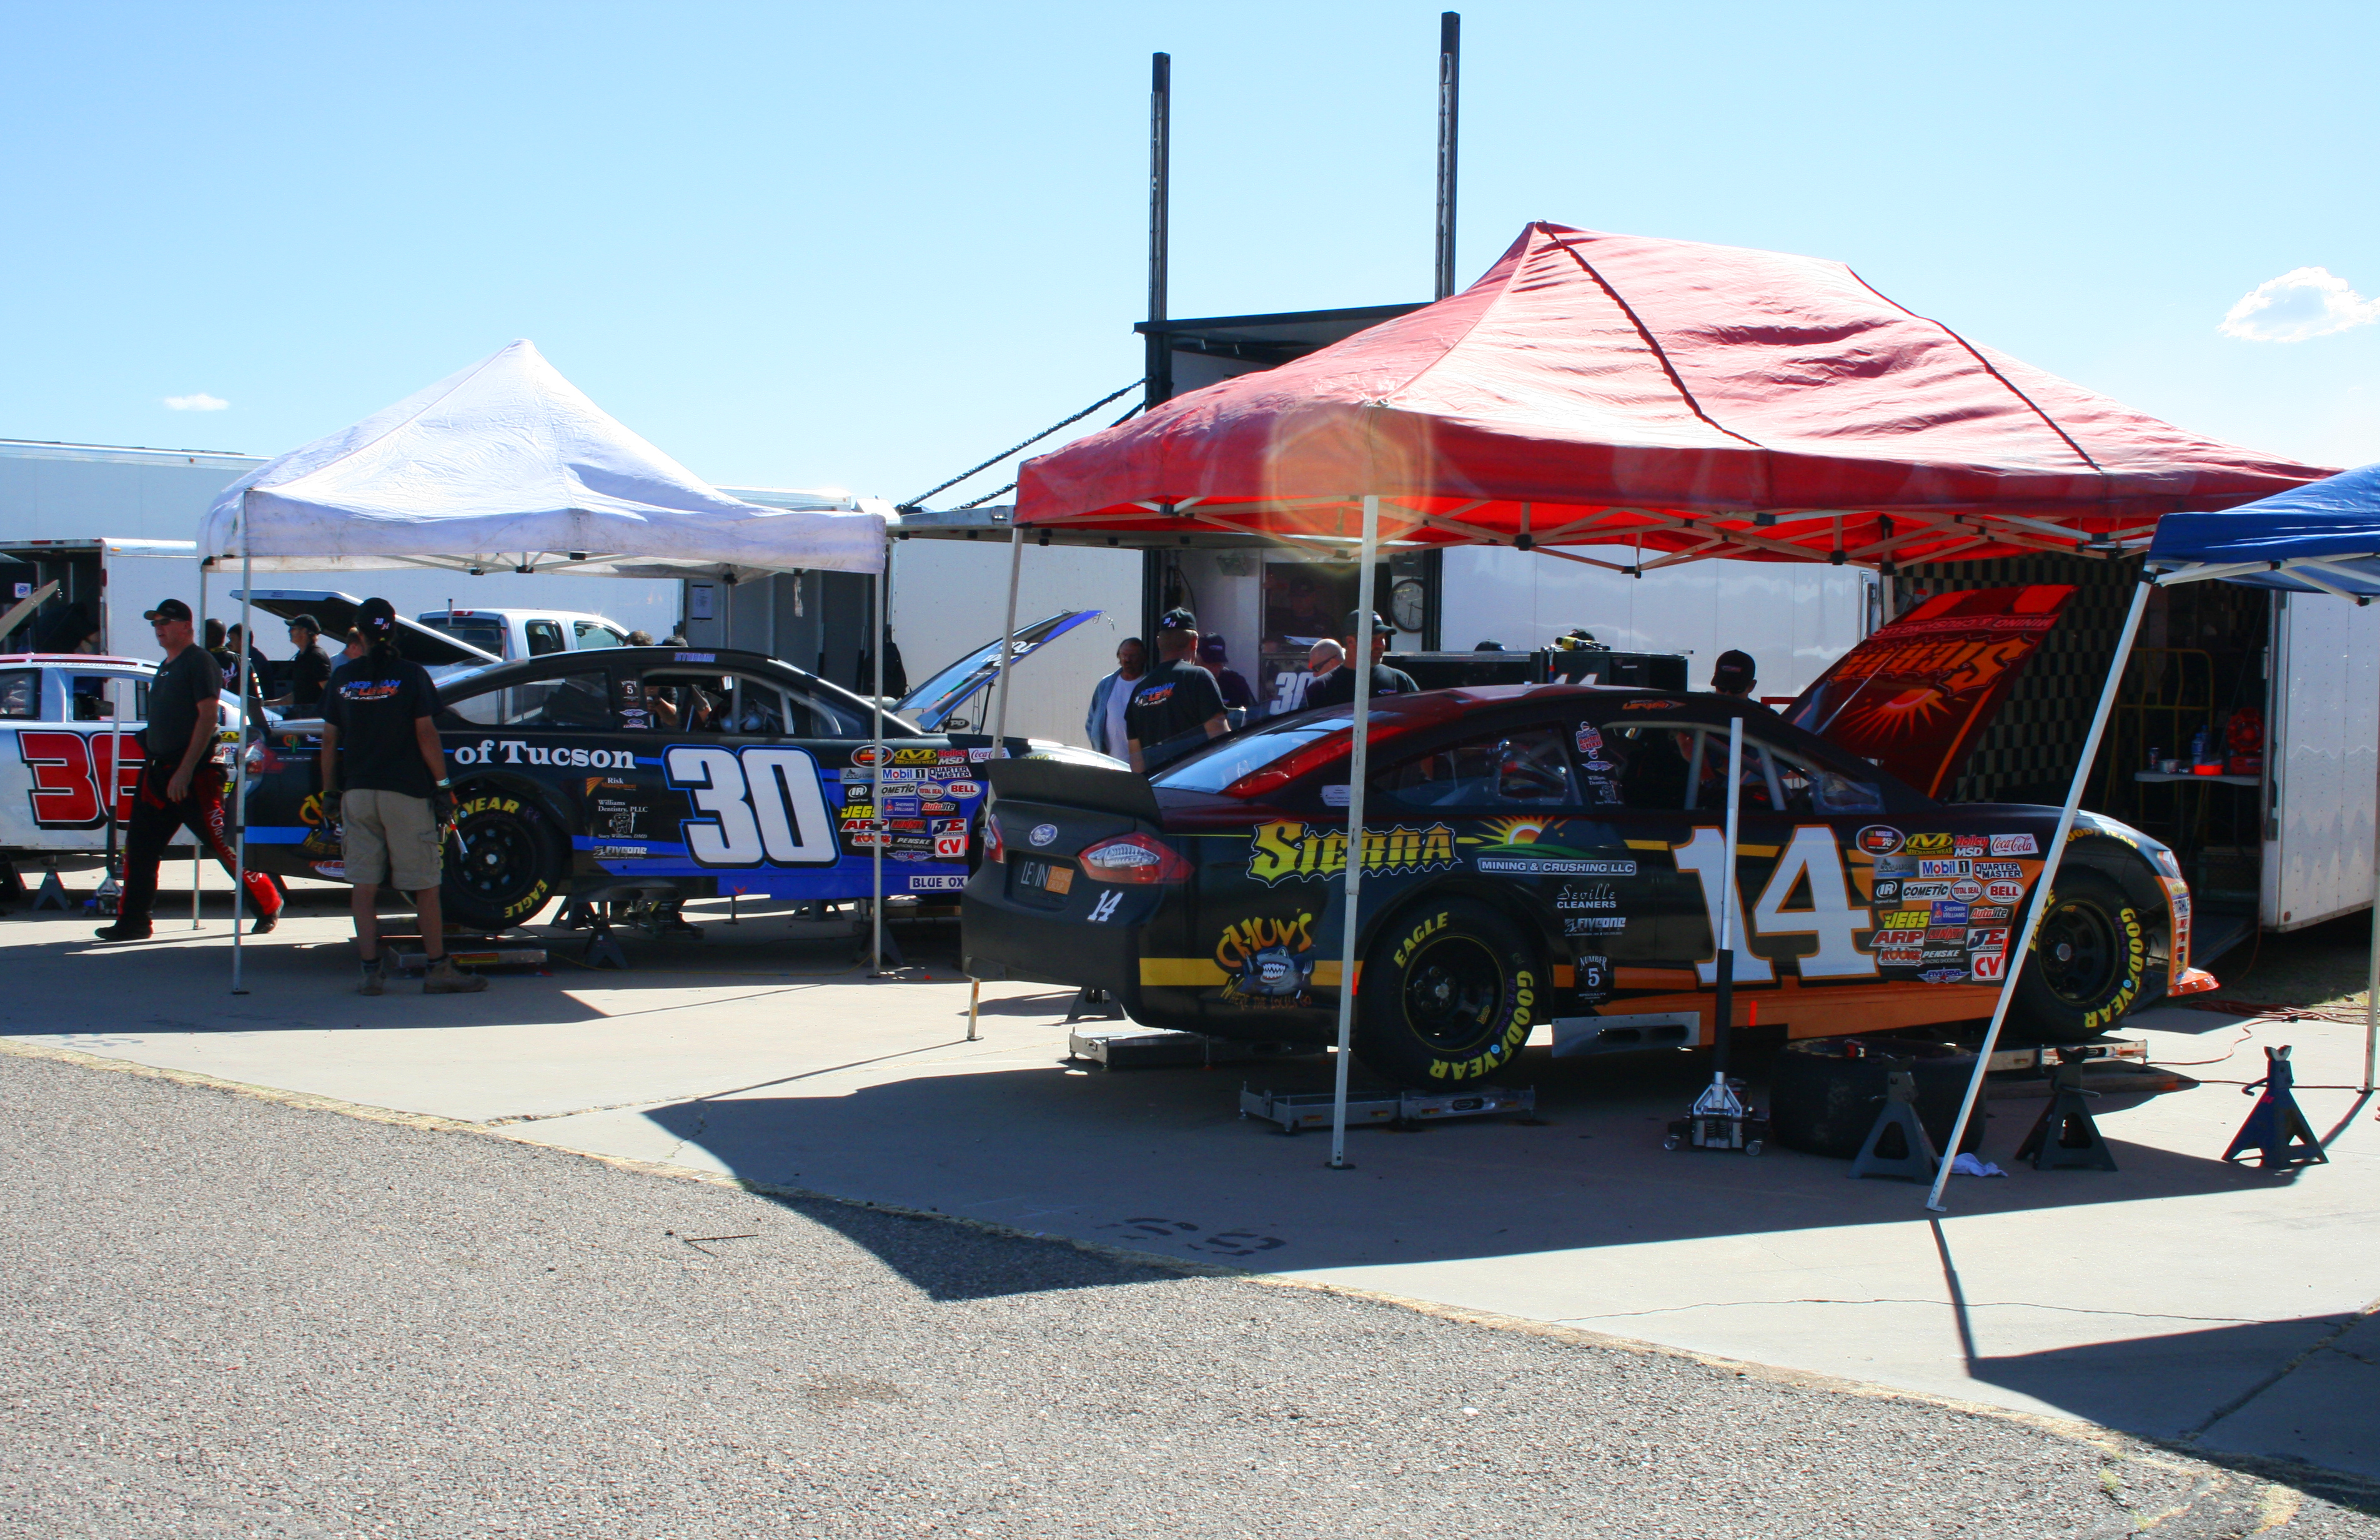 30 and 14 in pits